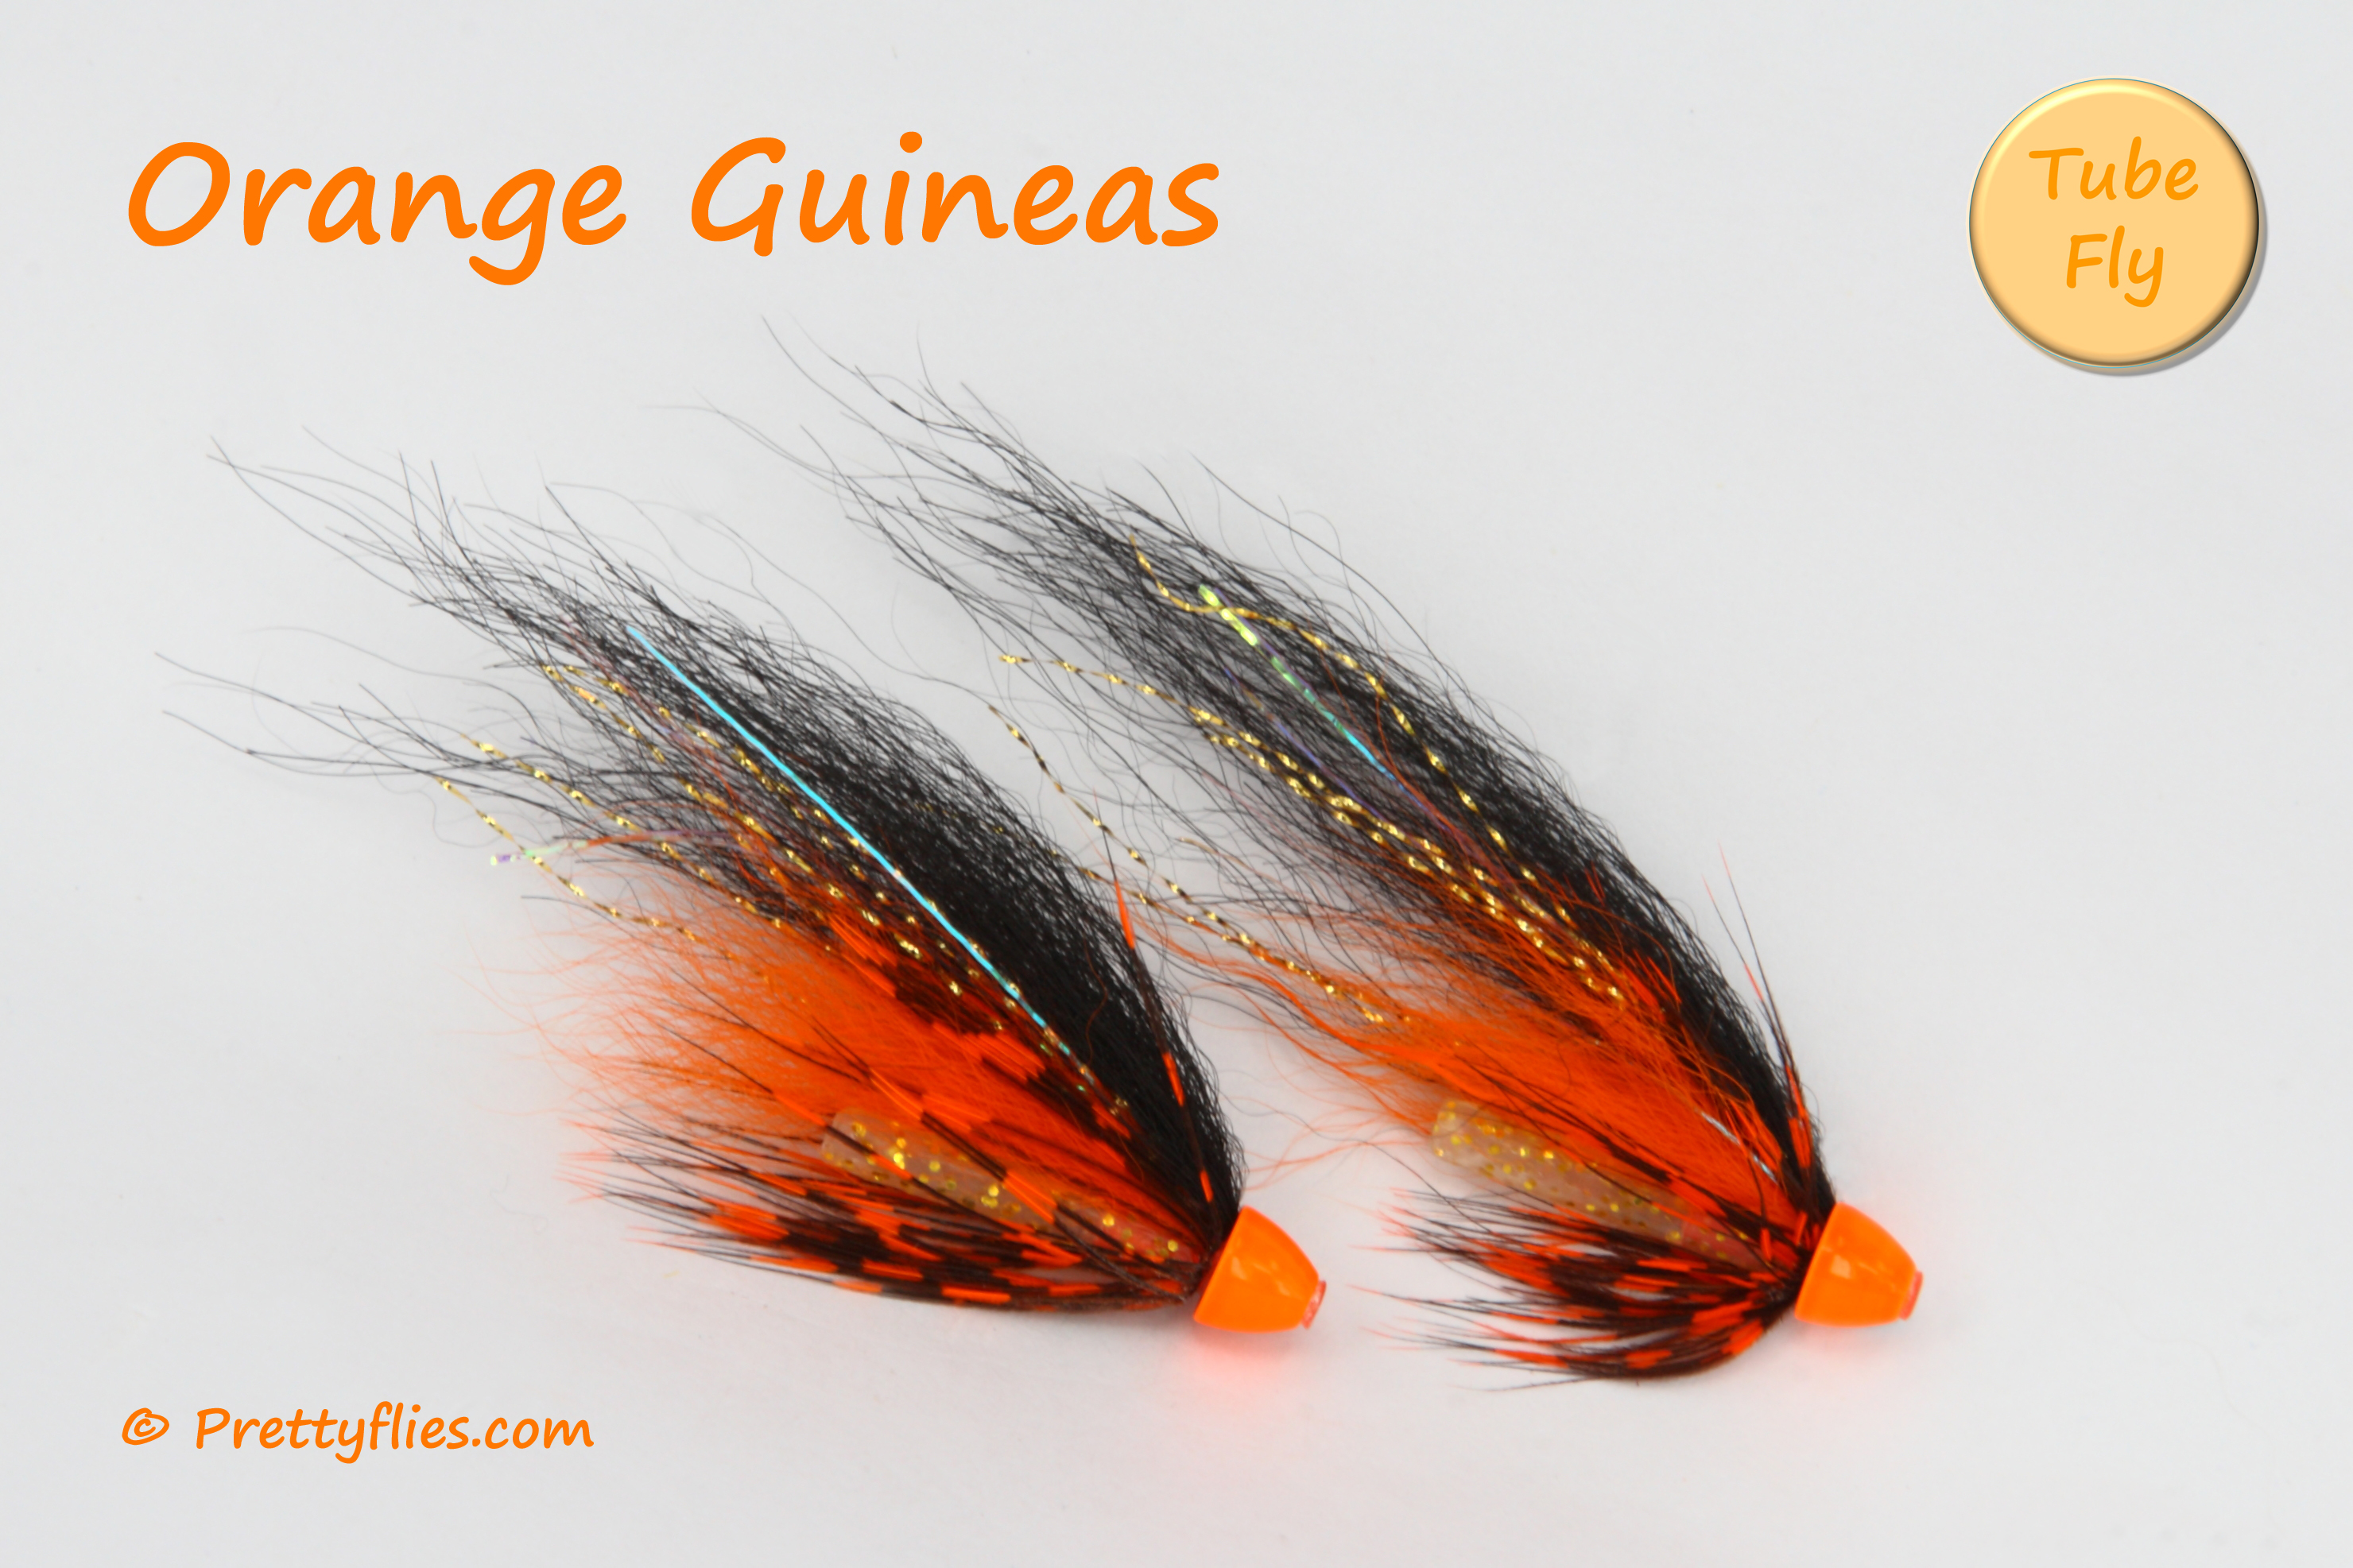 Orange Guineas copy.jpg